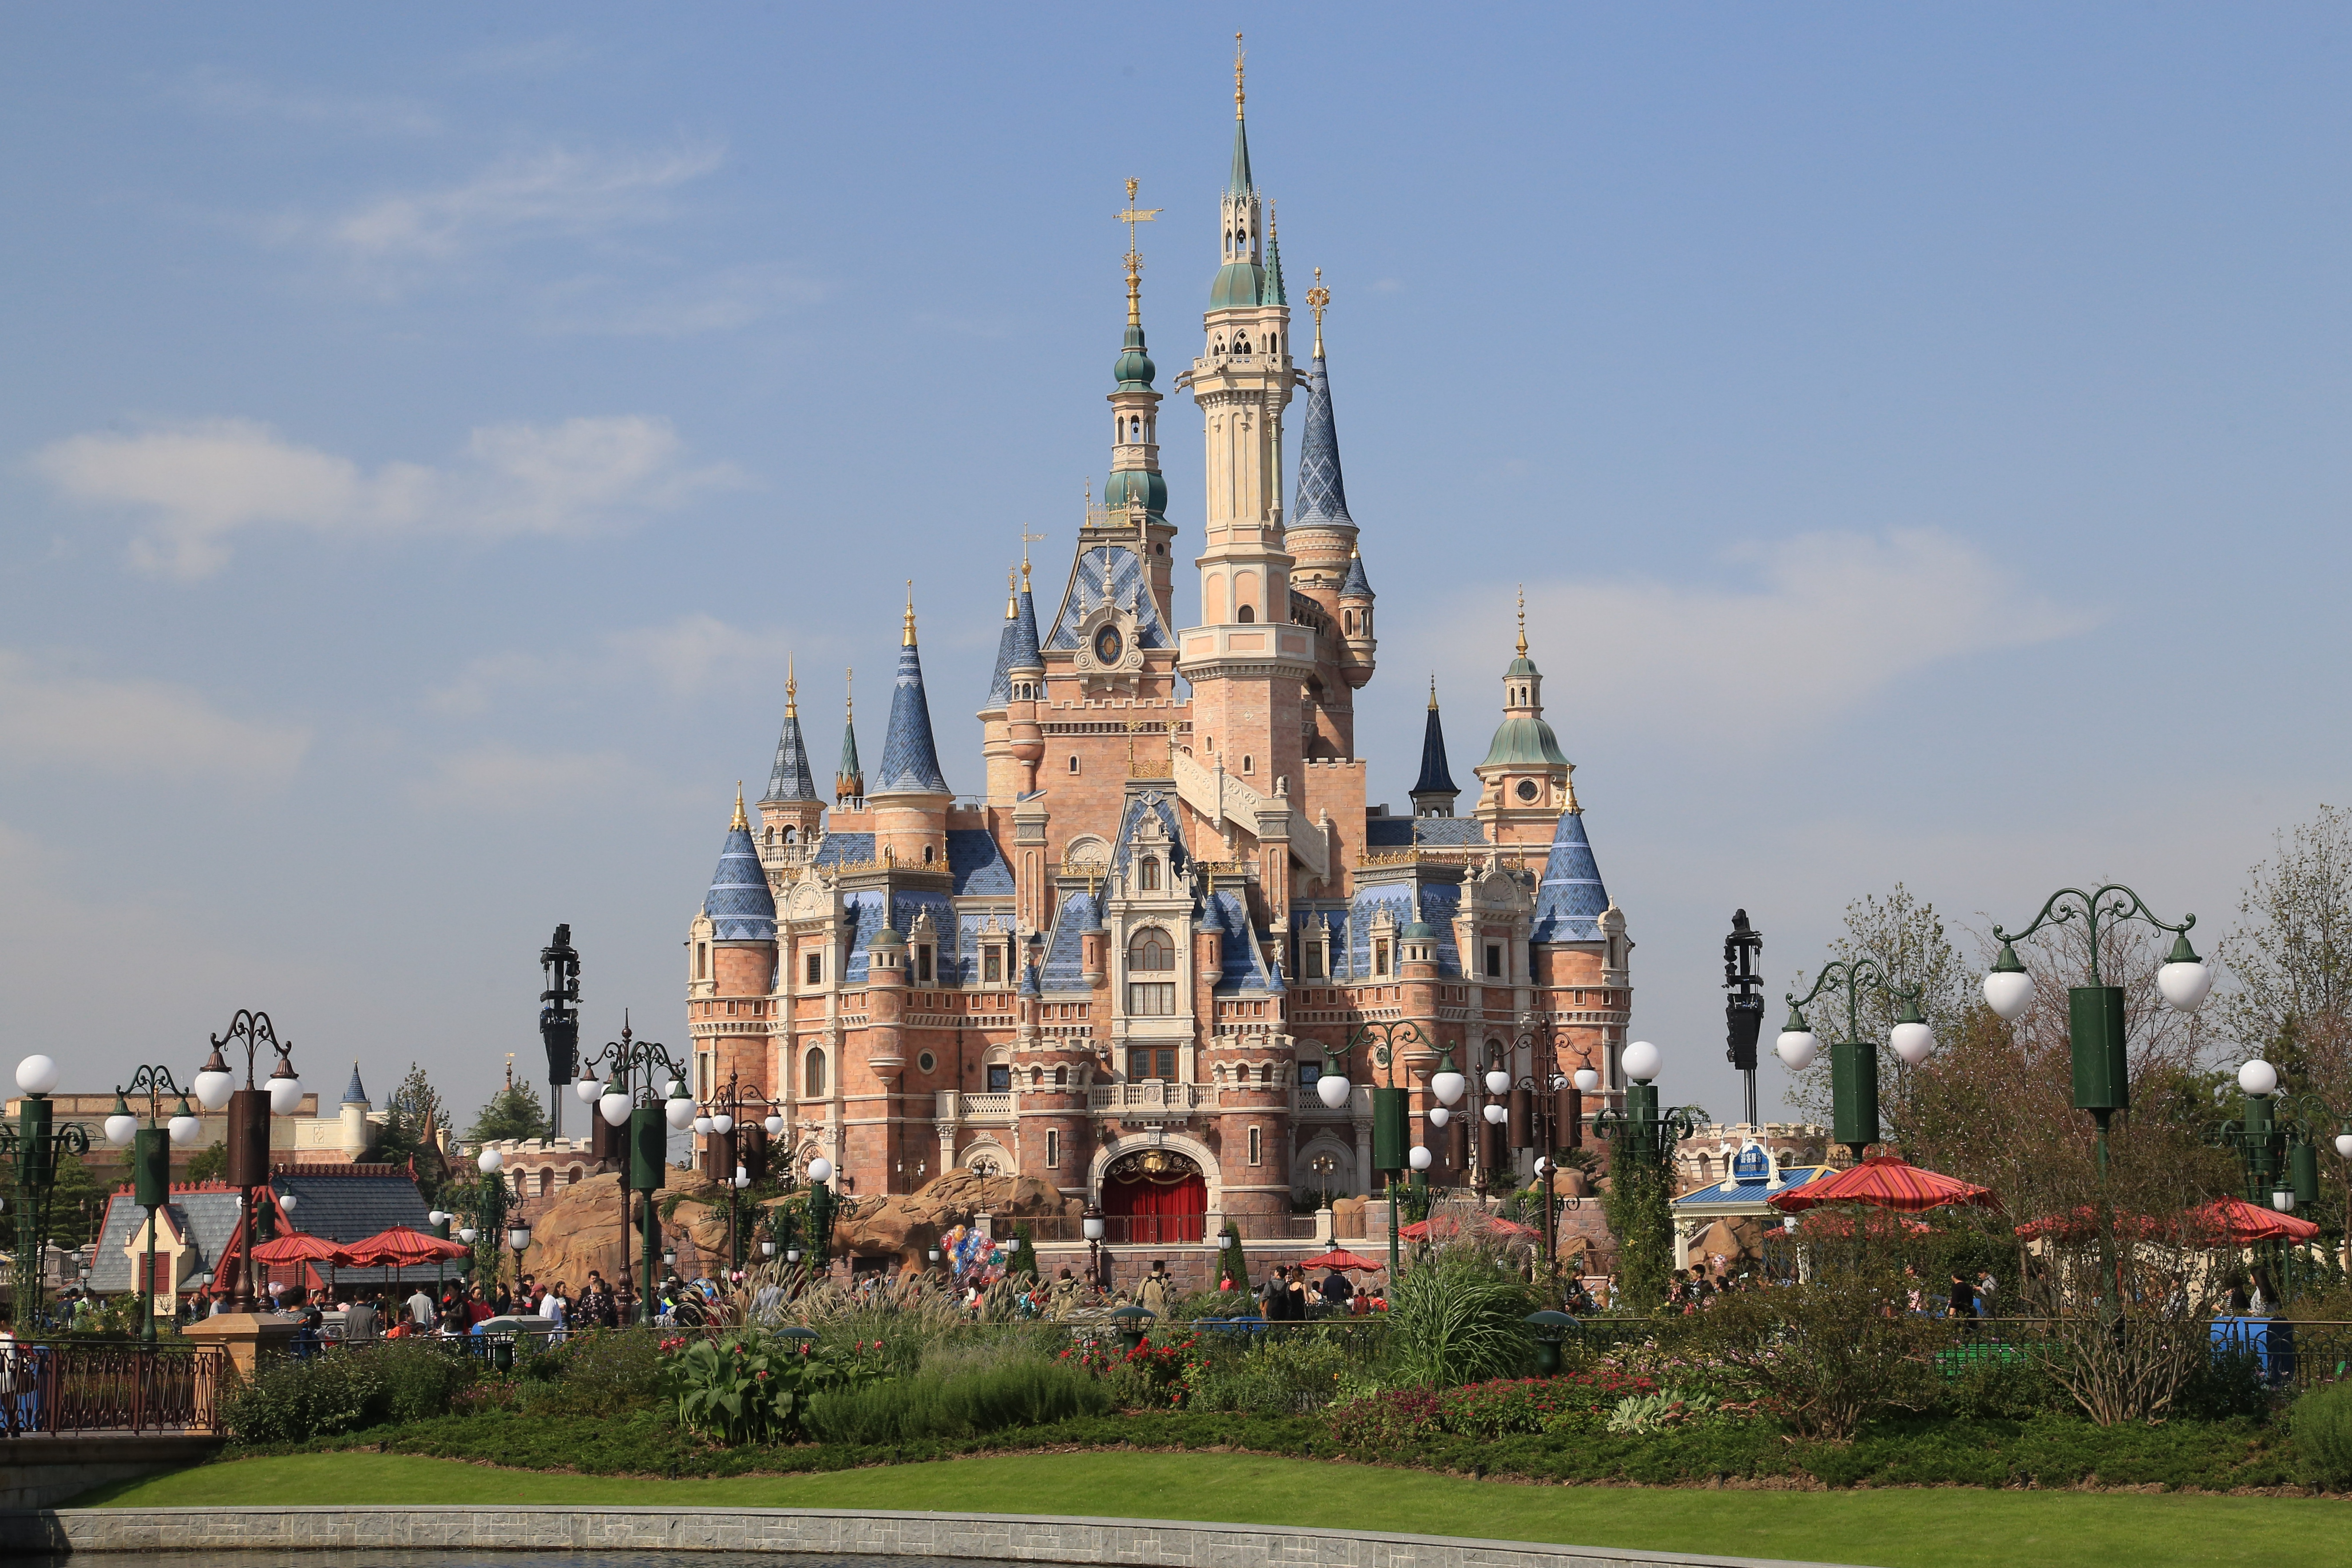 themed rooms disney inspired spaces.htm shanghai disneyland park wikipedia  shanghai disneyland park wikipedia